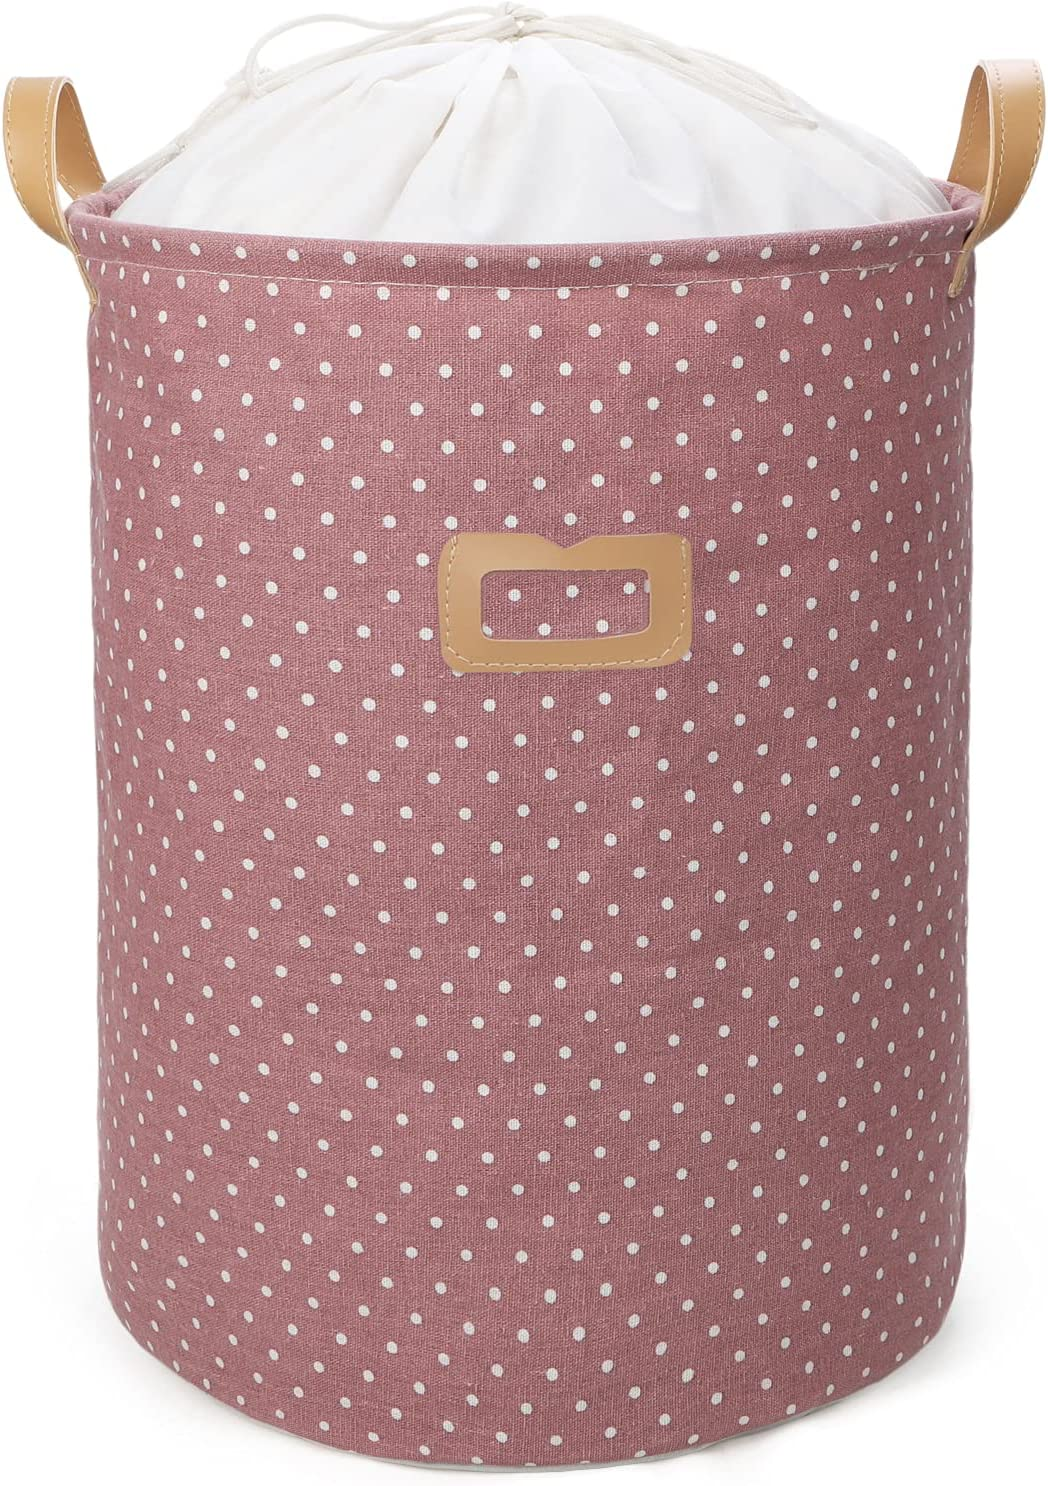 Yodo Collapsible Laundry Baskets-Large Foldable Laundry Hampers Freestanding Clothes Toy Storage Organizer with Waterproof Lining and Drawstring Closure,Dots